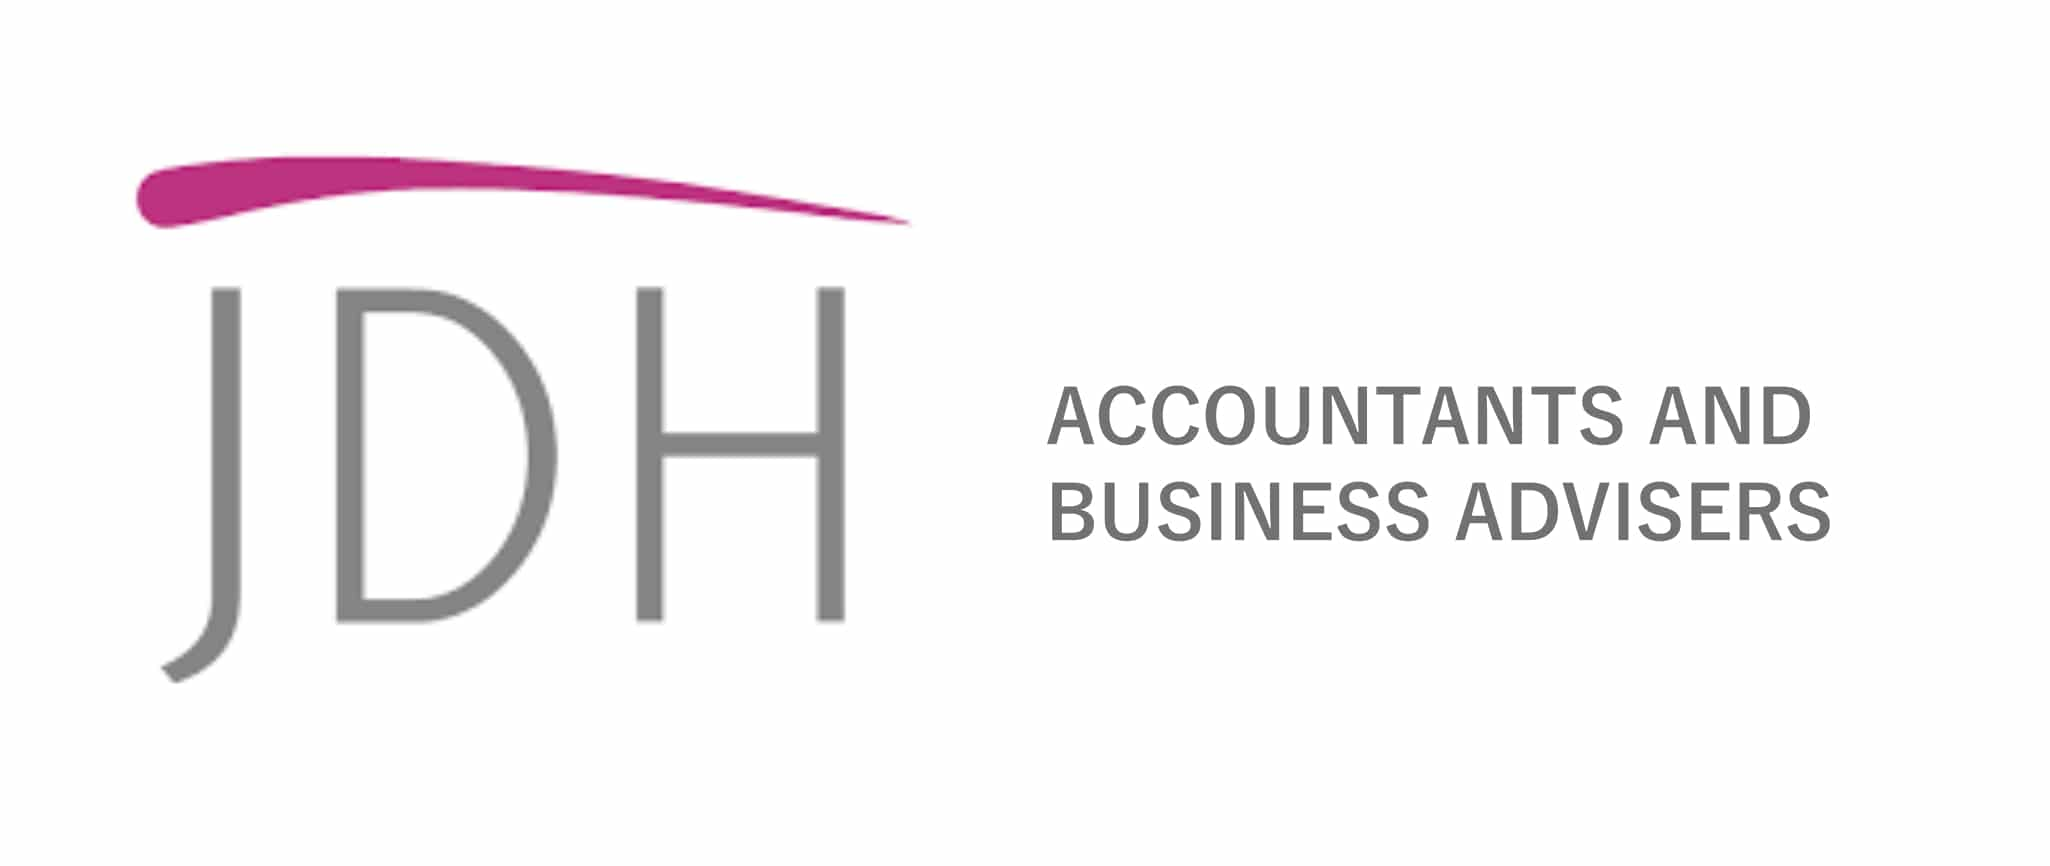 JDH Accountants & Business Advisers | Merthyr Tydfil